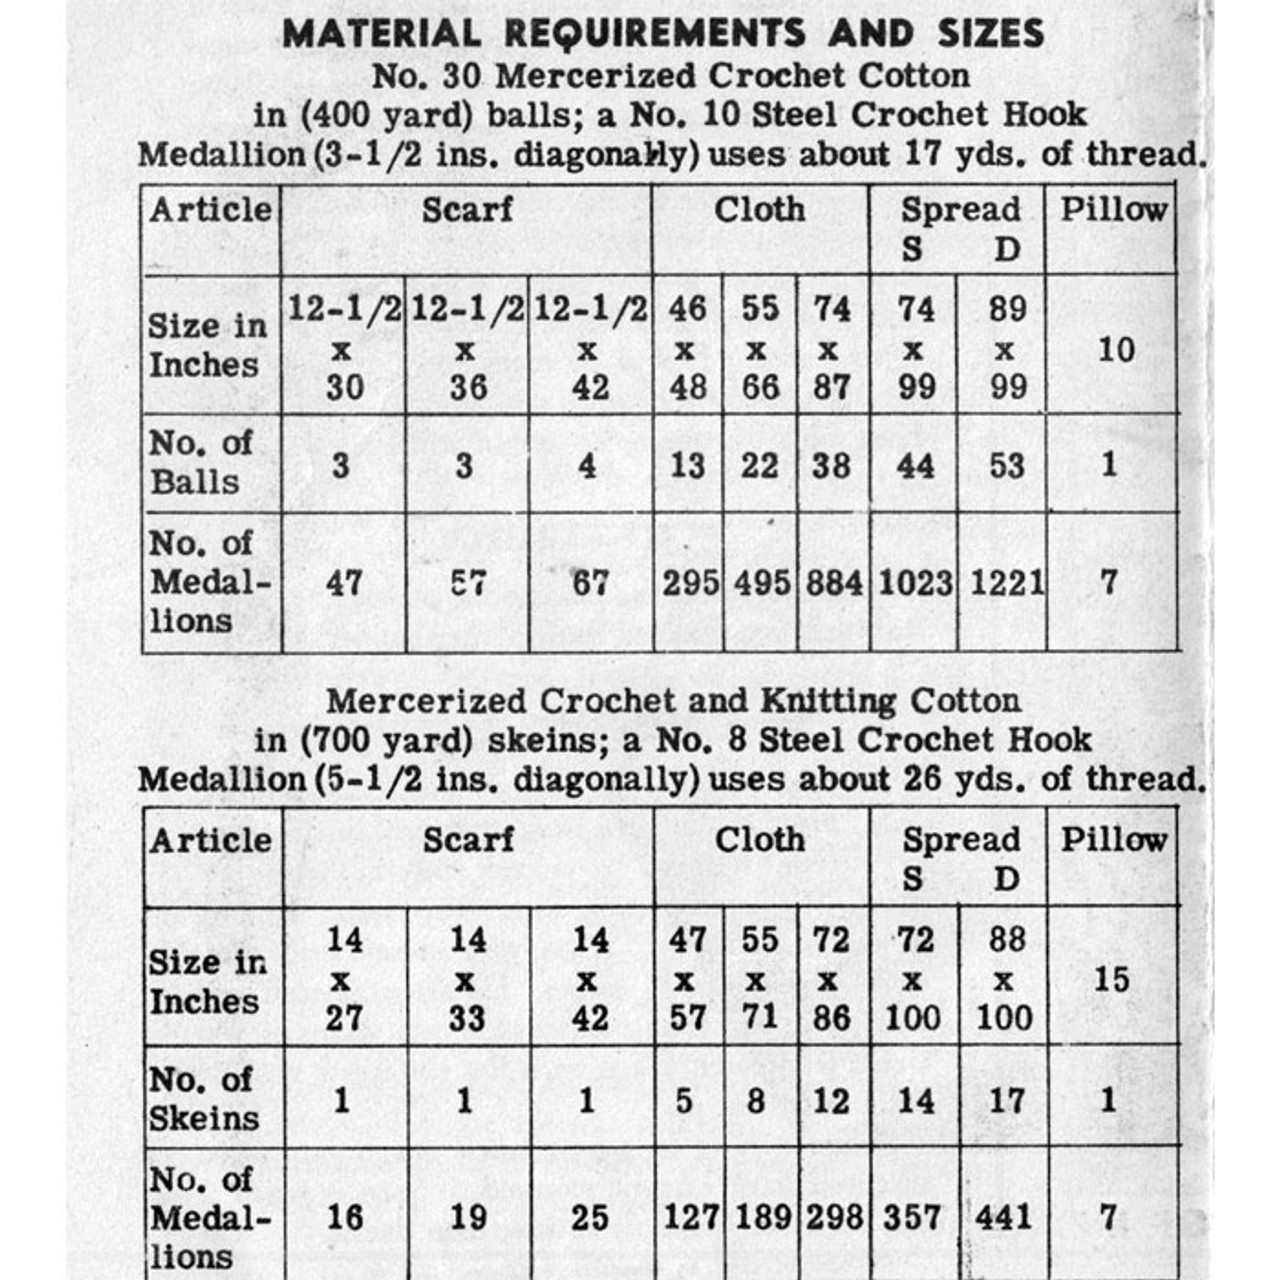 Material Crochet Requirements for Star Medallion